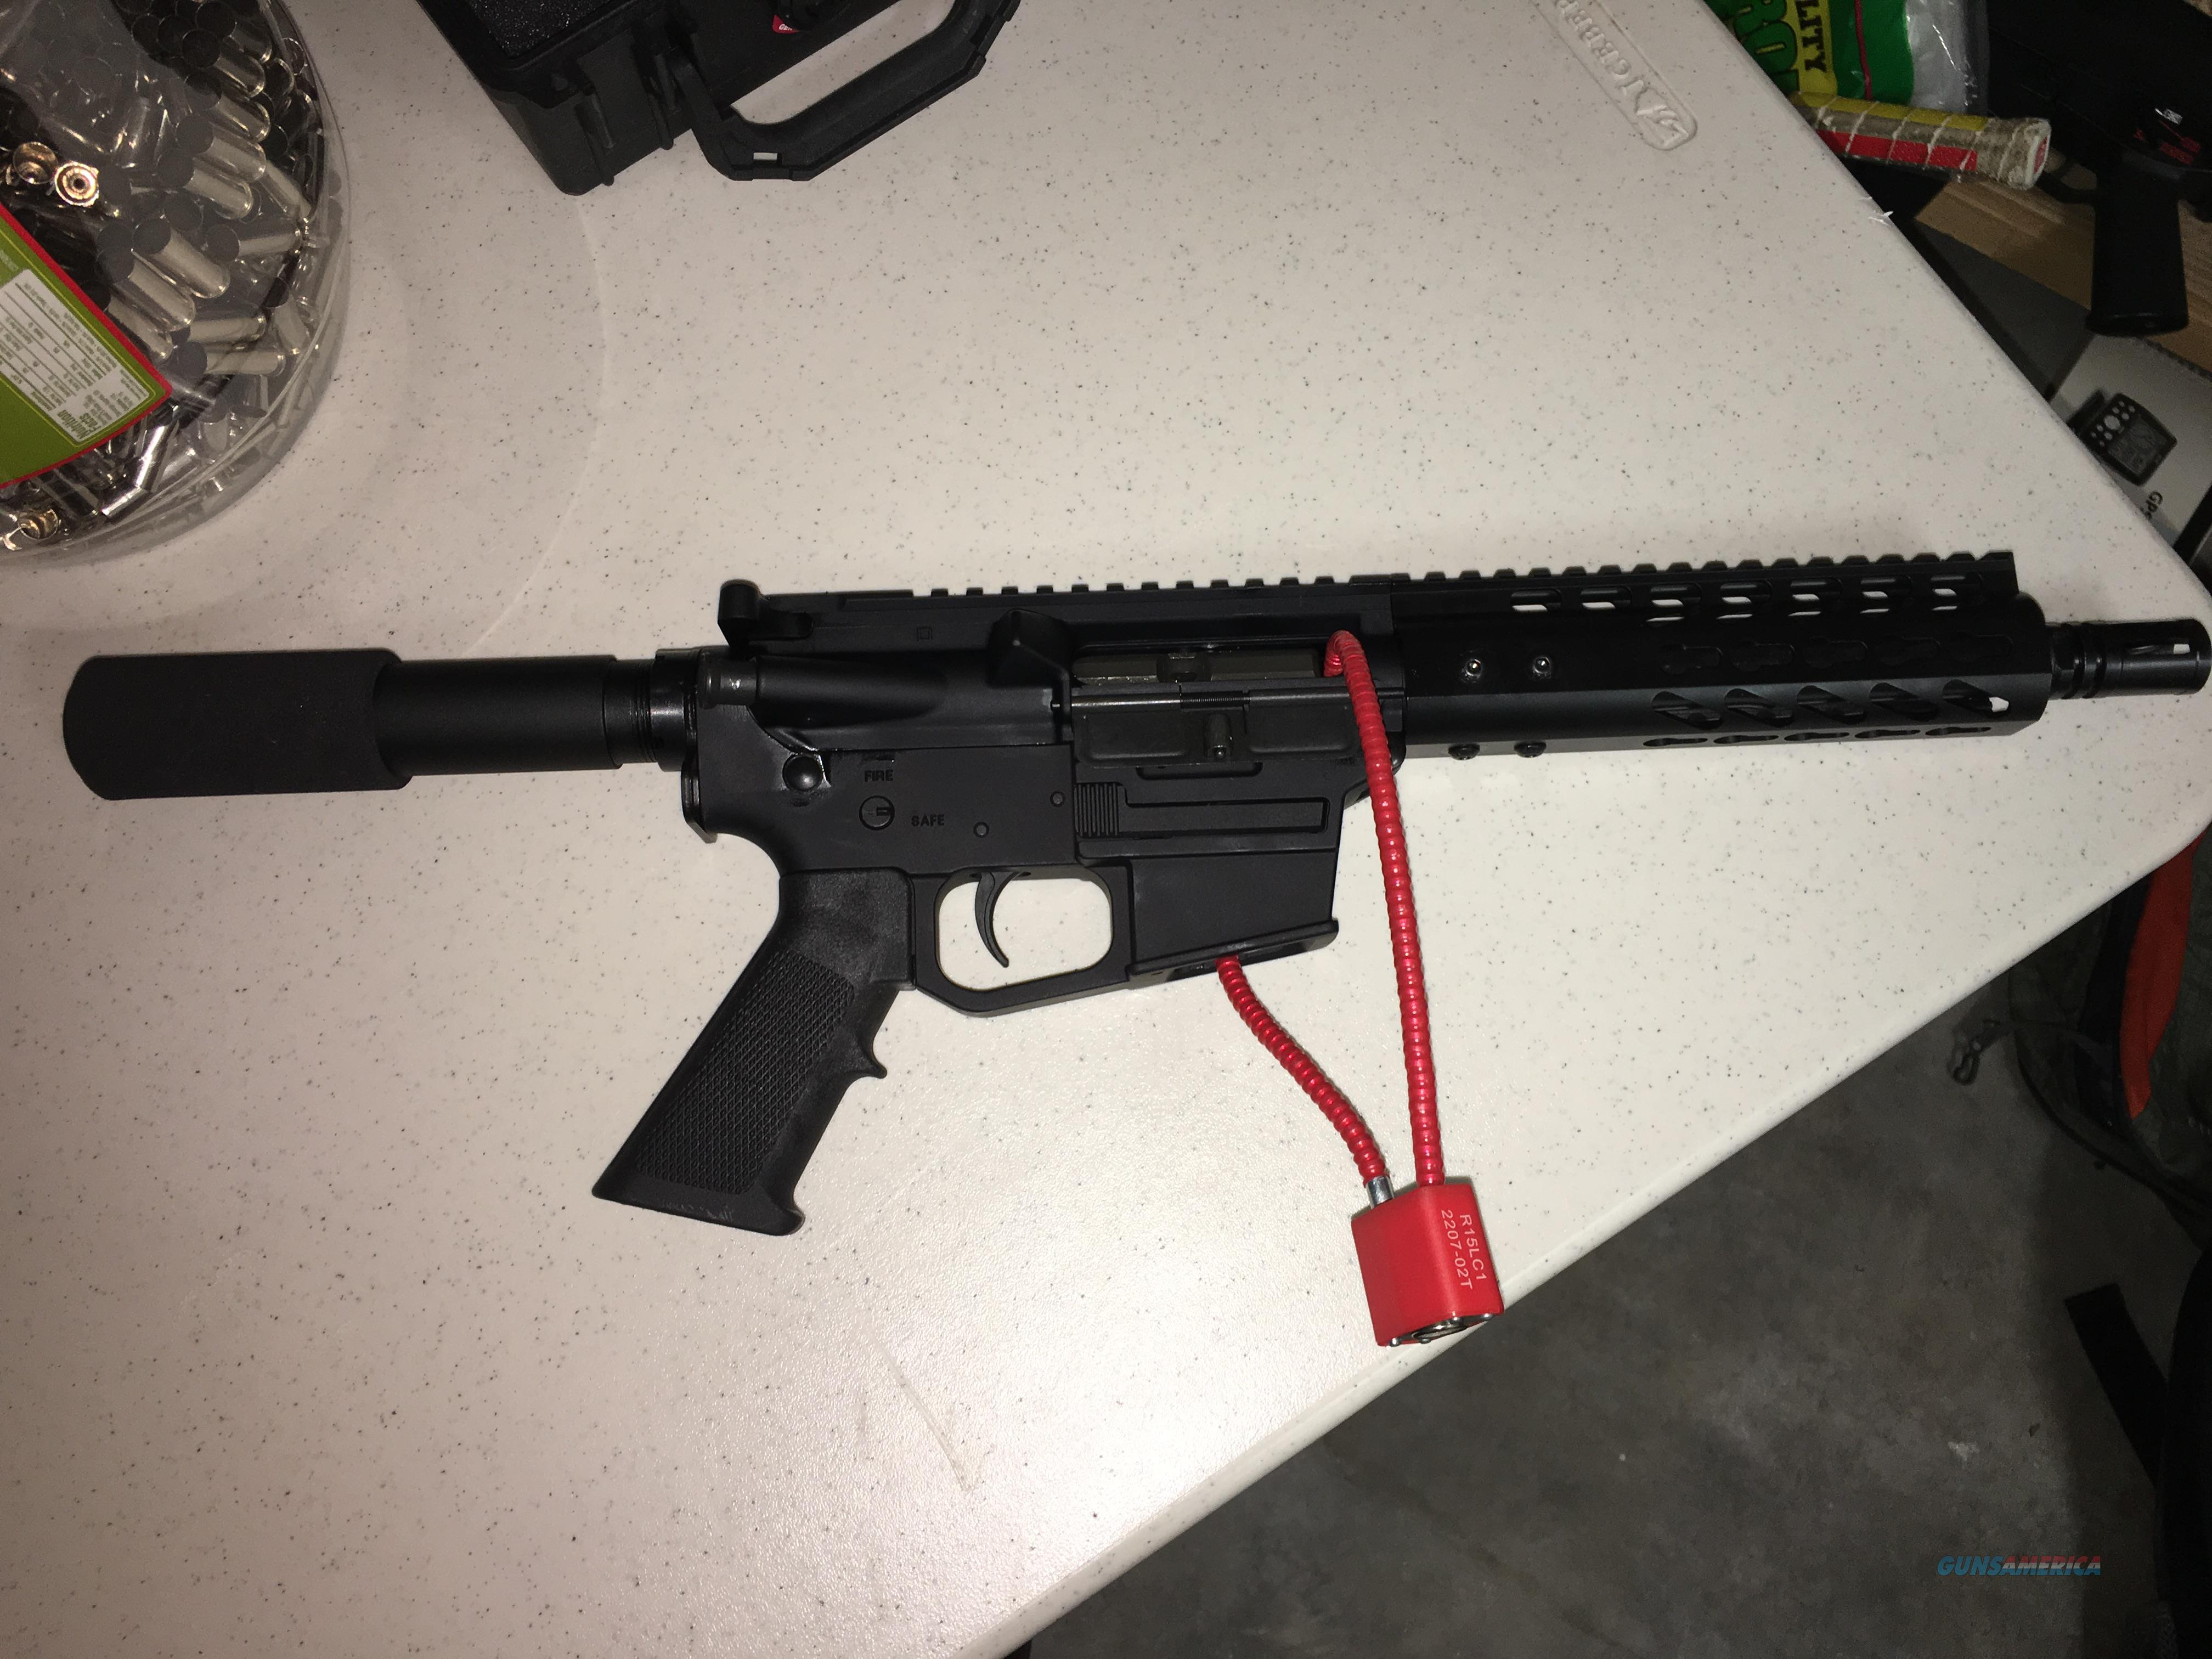 Daytona Tactical - 9MM AR 15 PISTOL KIT 8.5 INCH STAINLESS STEEL BARREL WITH NO LOWER  Guns > Pistols > A Misc Pistols